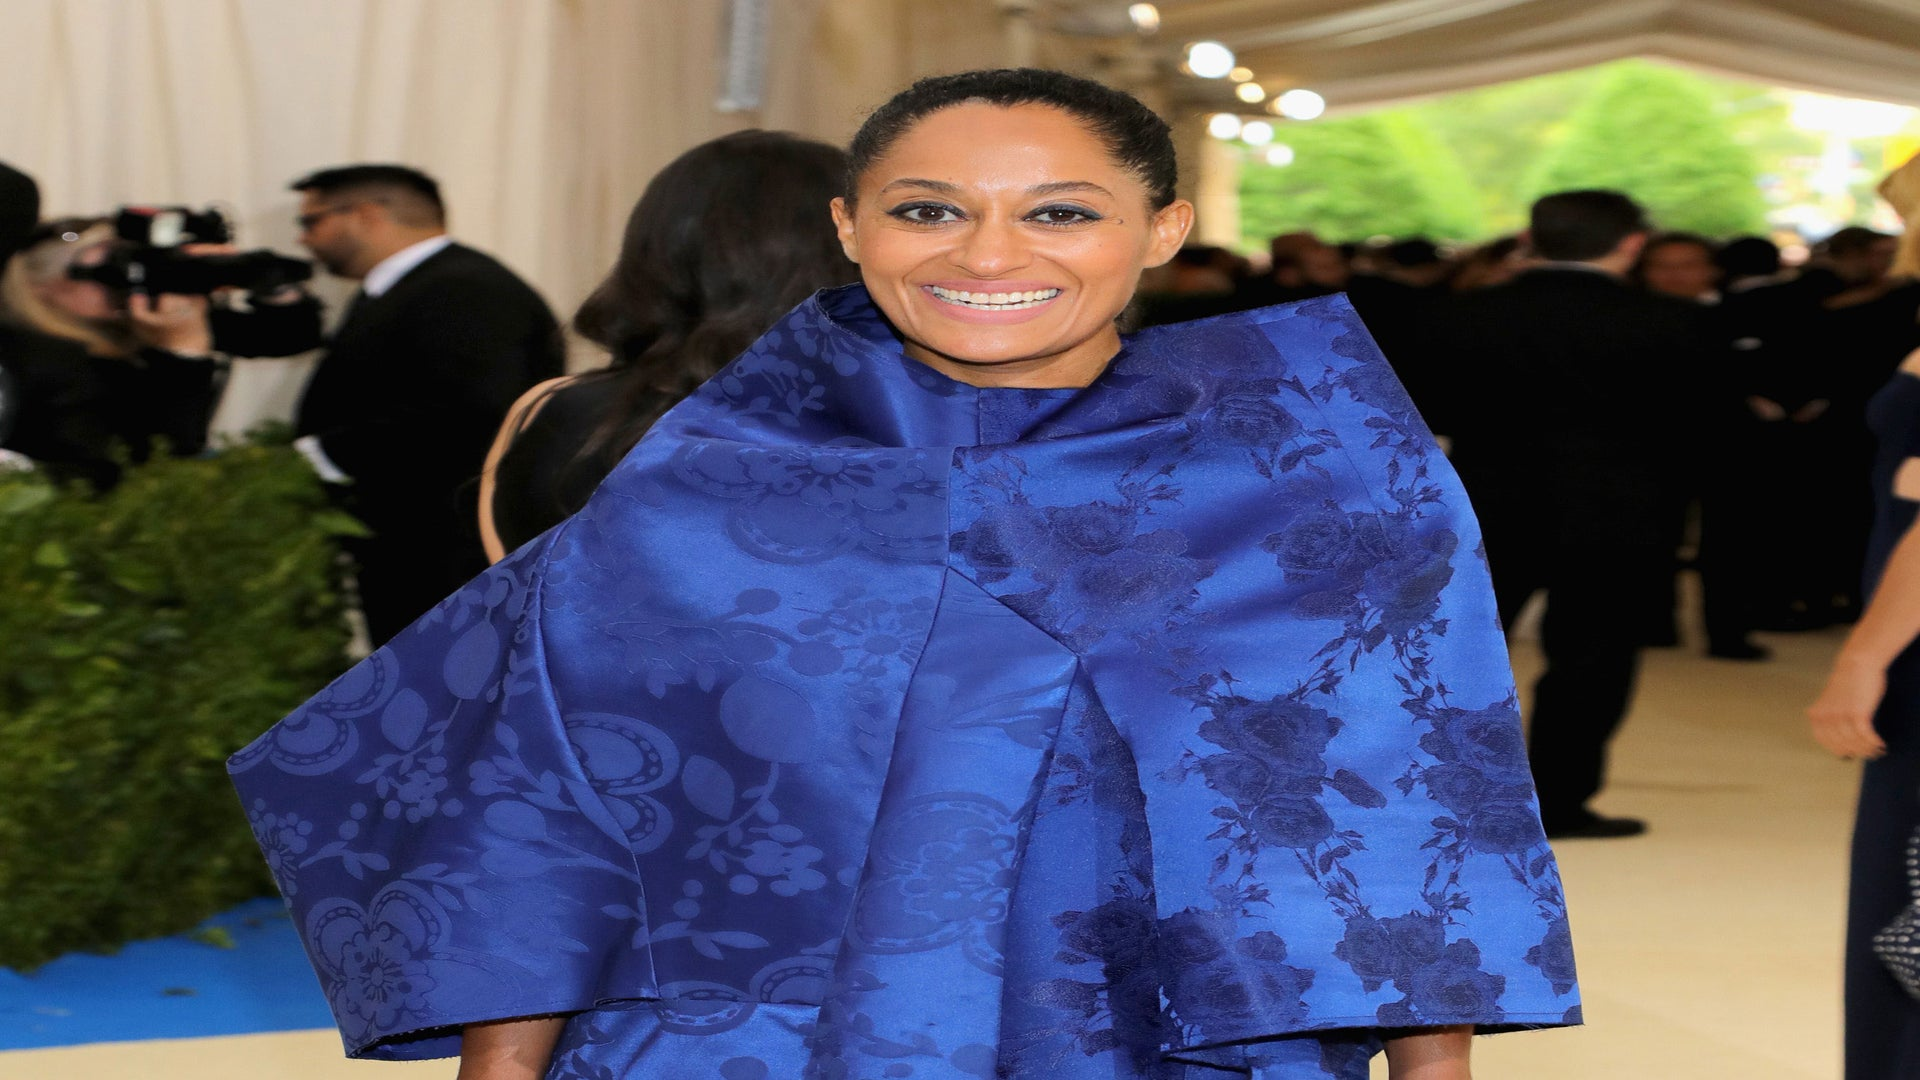 Tracee Ellis Ross Gives Bold Blue Moment at 2017 Met Gala